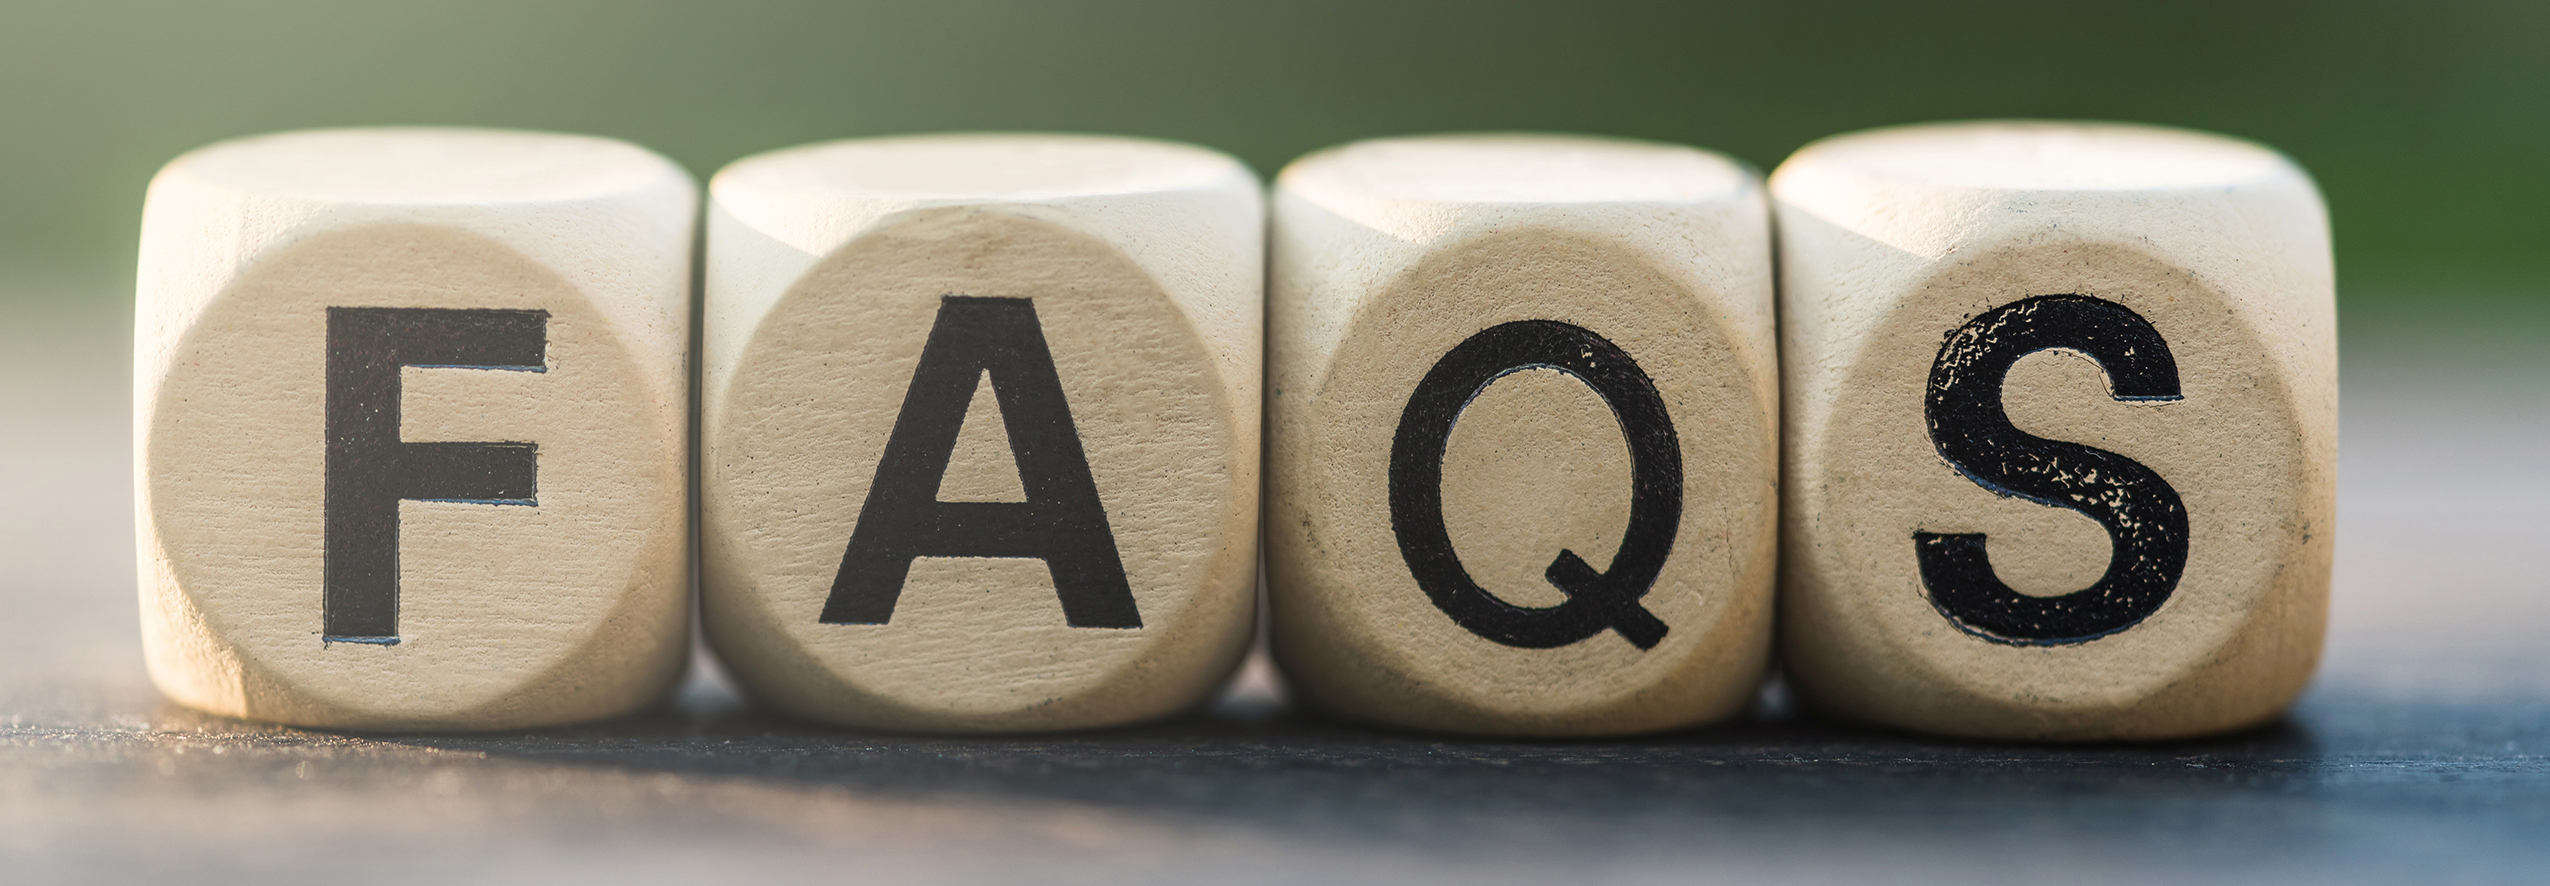 black-letters-on-wood-cubes-spelling-faqs_2550x866